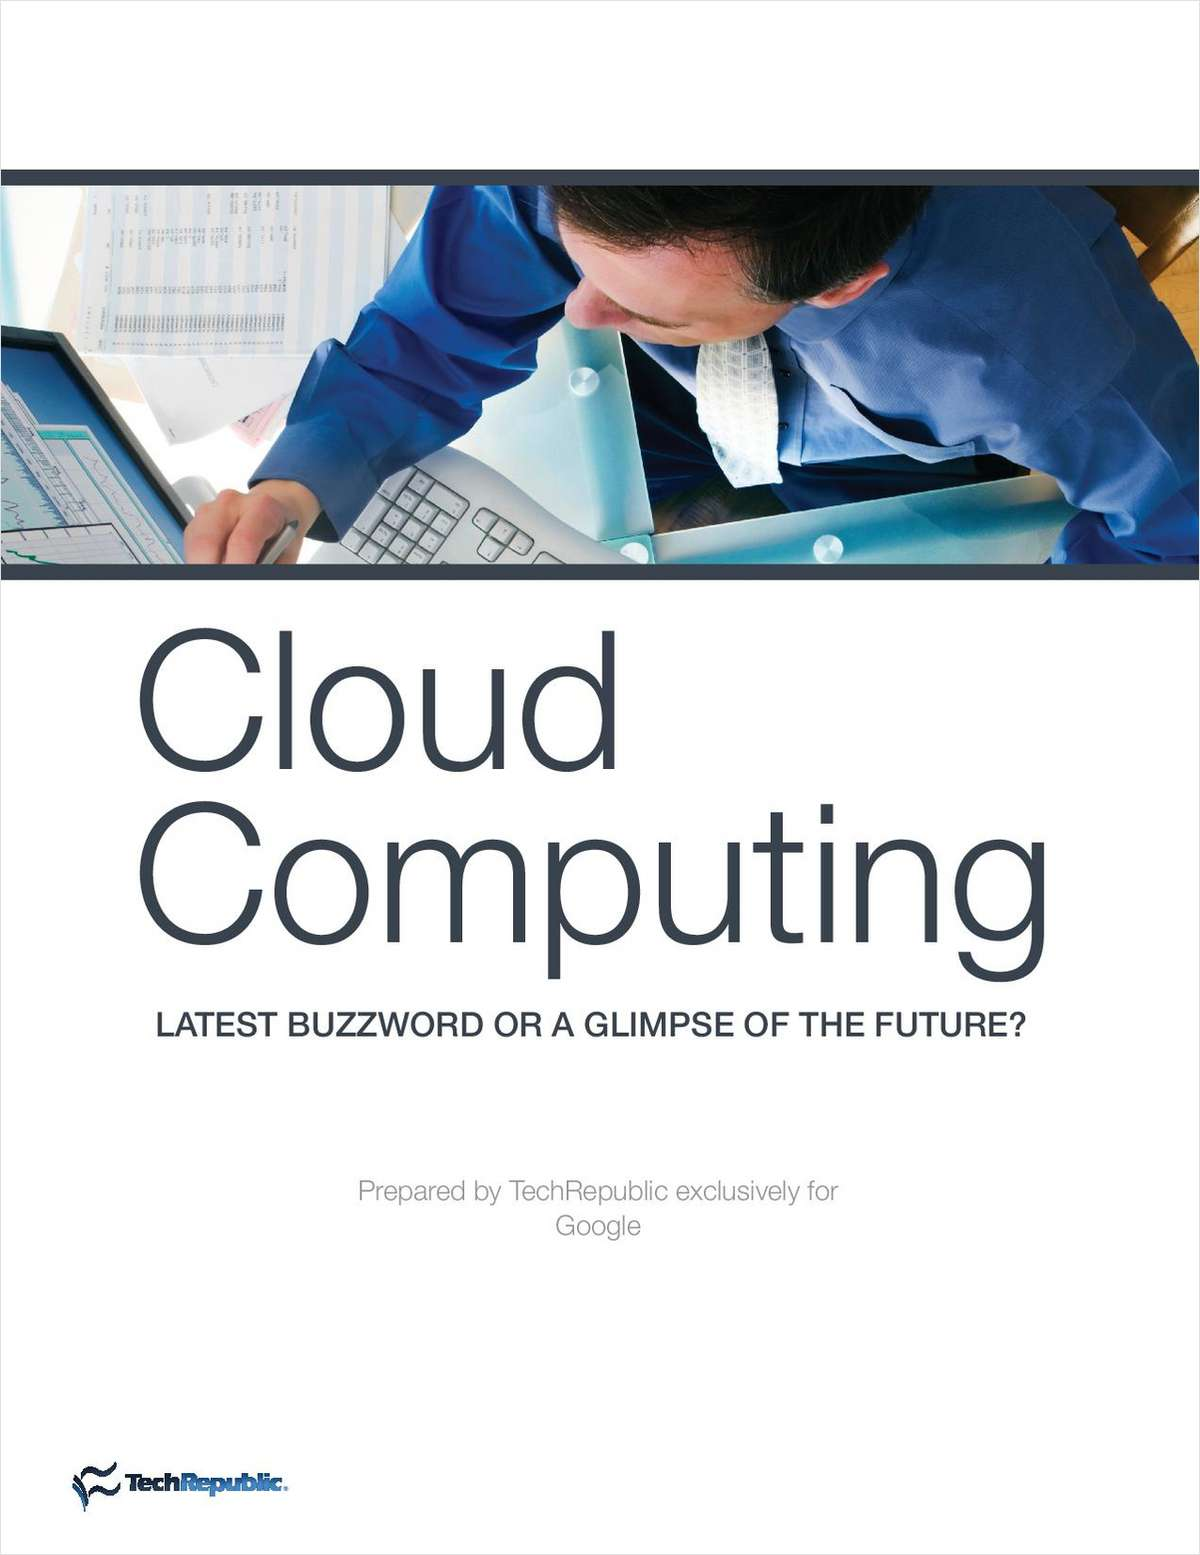 Cloud Computing - Latest Buzzword or a Glimpse of the Future?